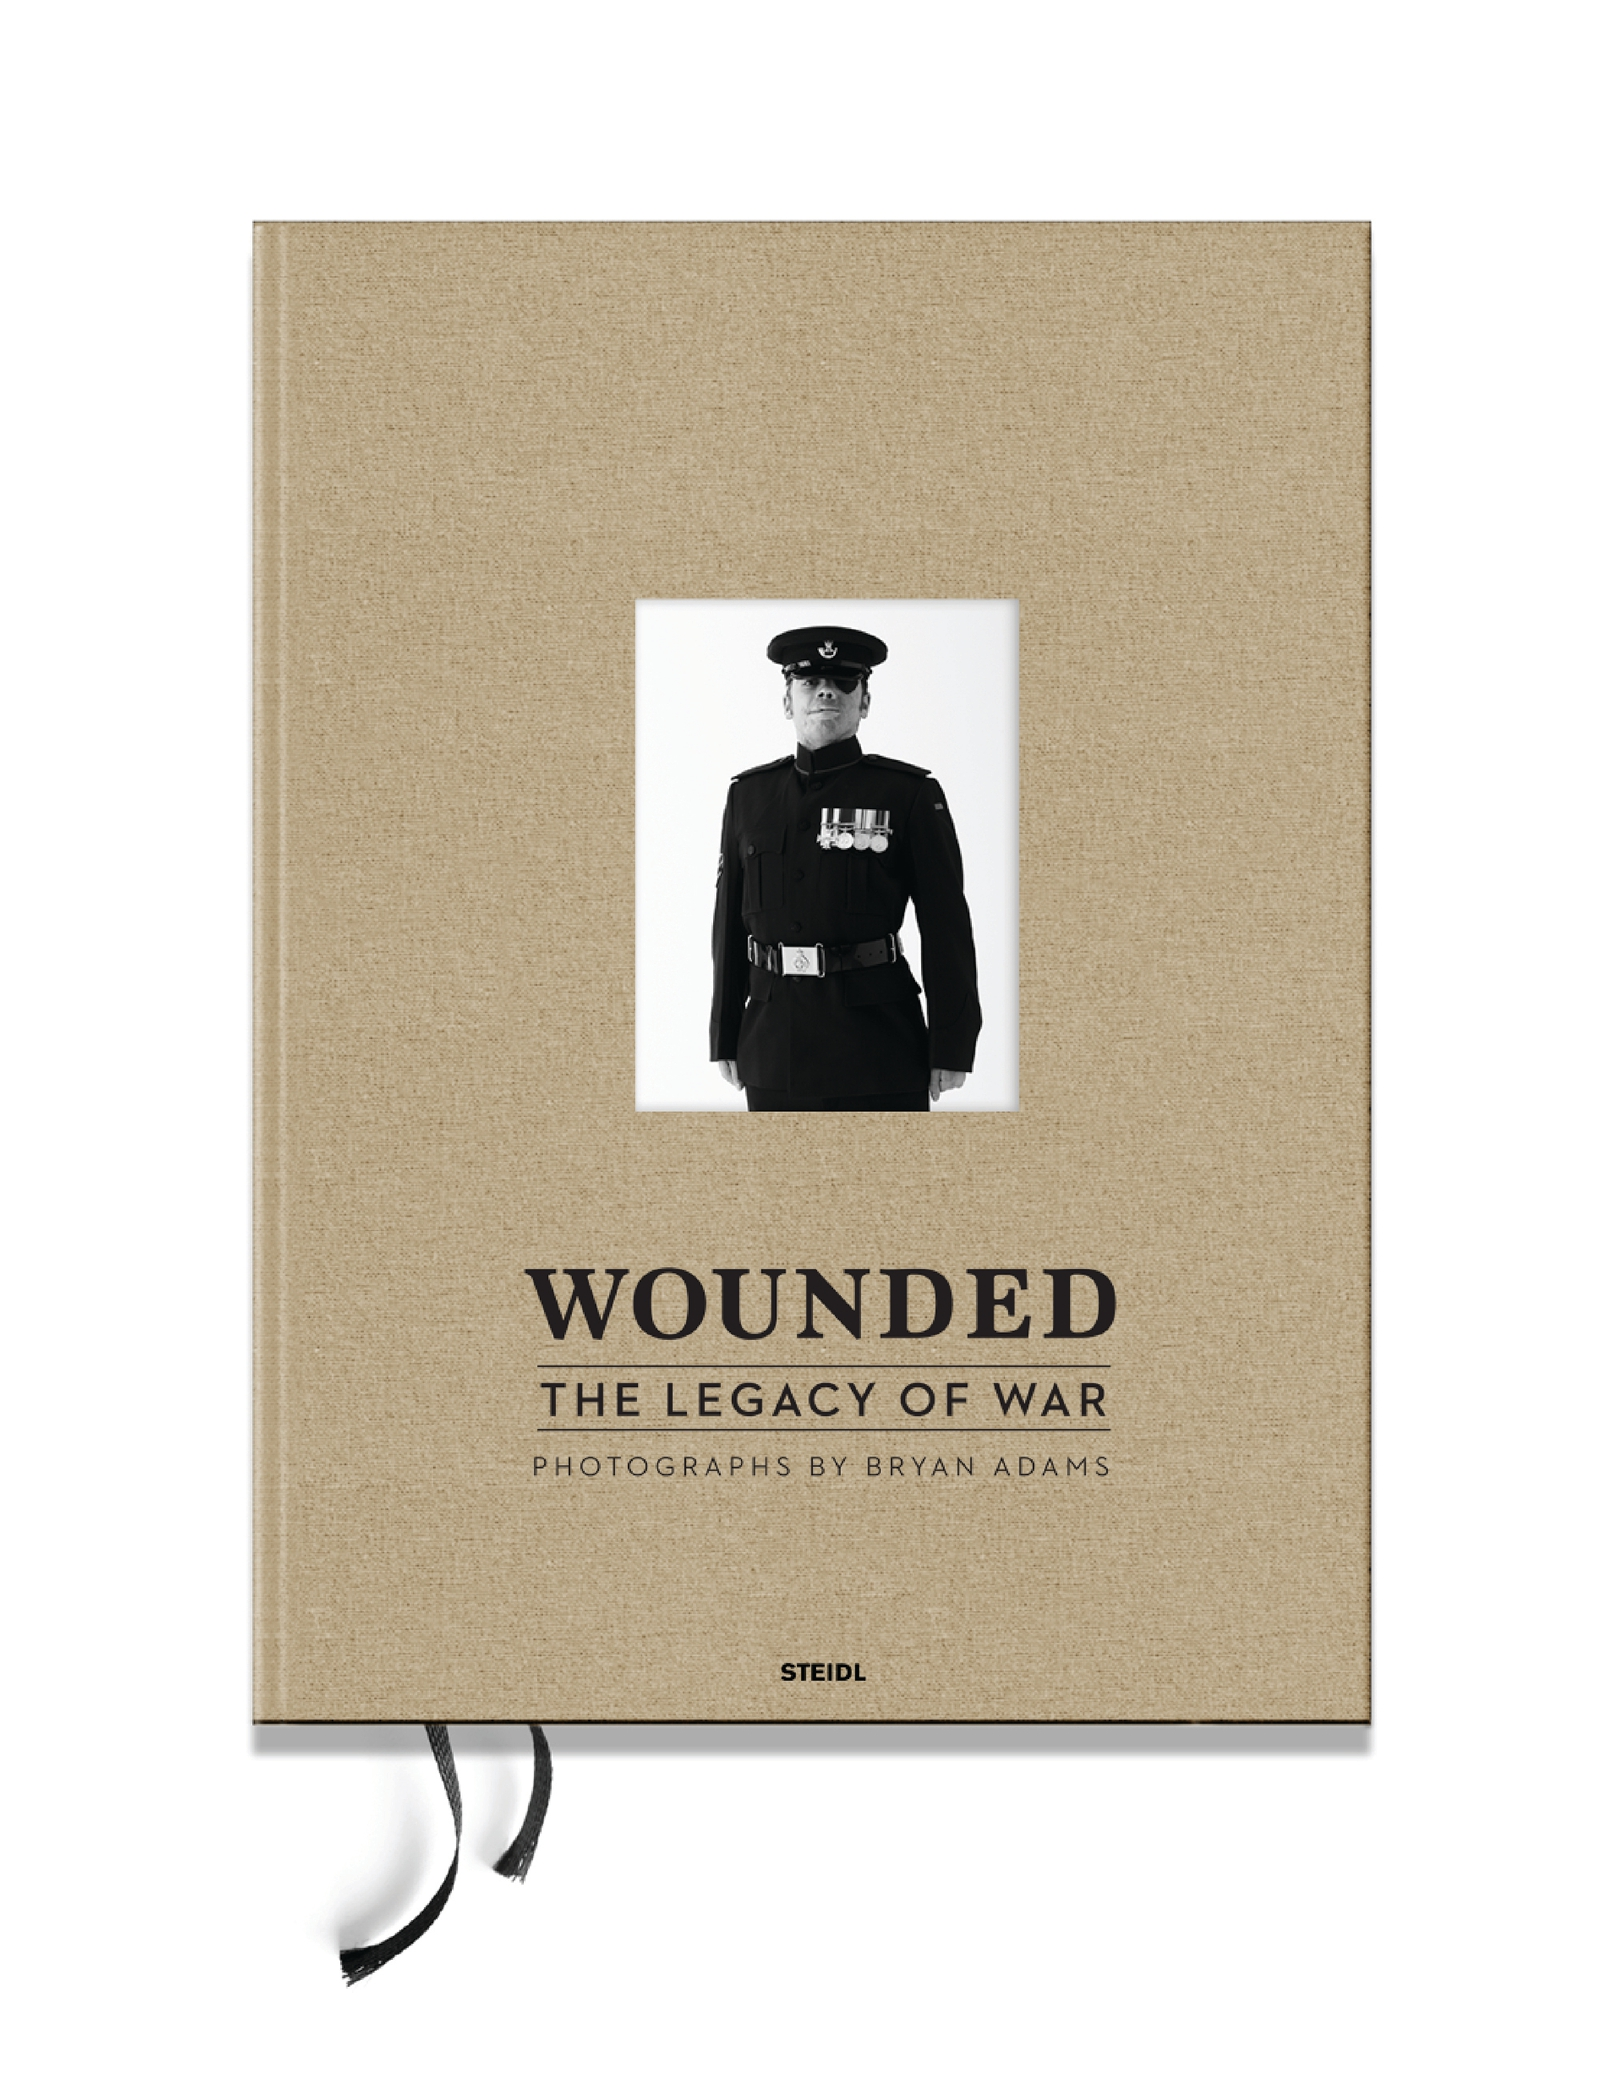 Bryan Adams signed book – Wounded: The Legacy of War